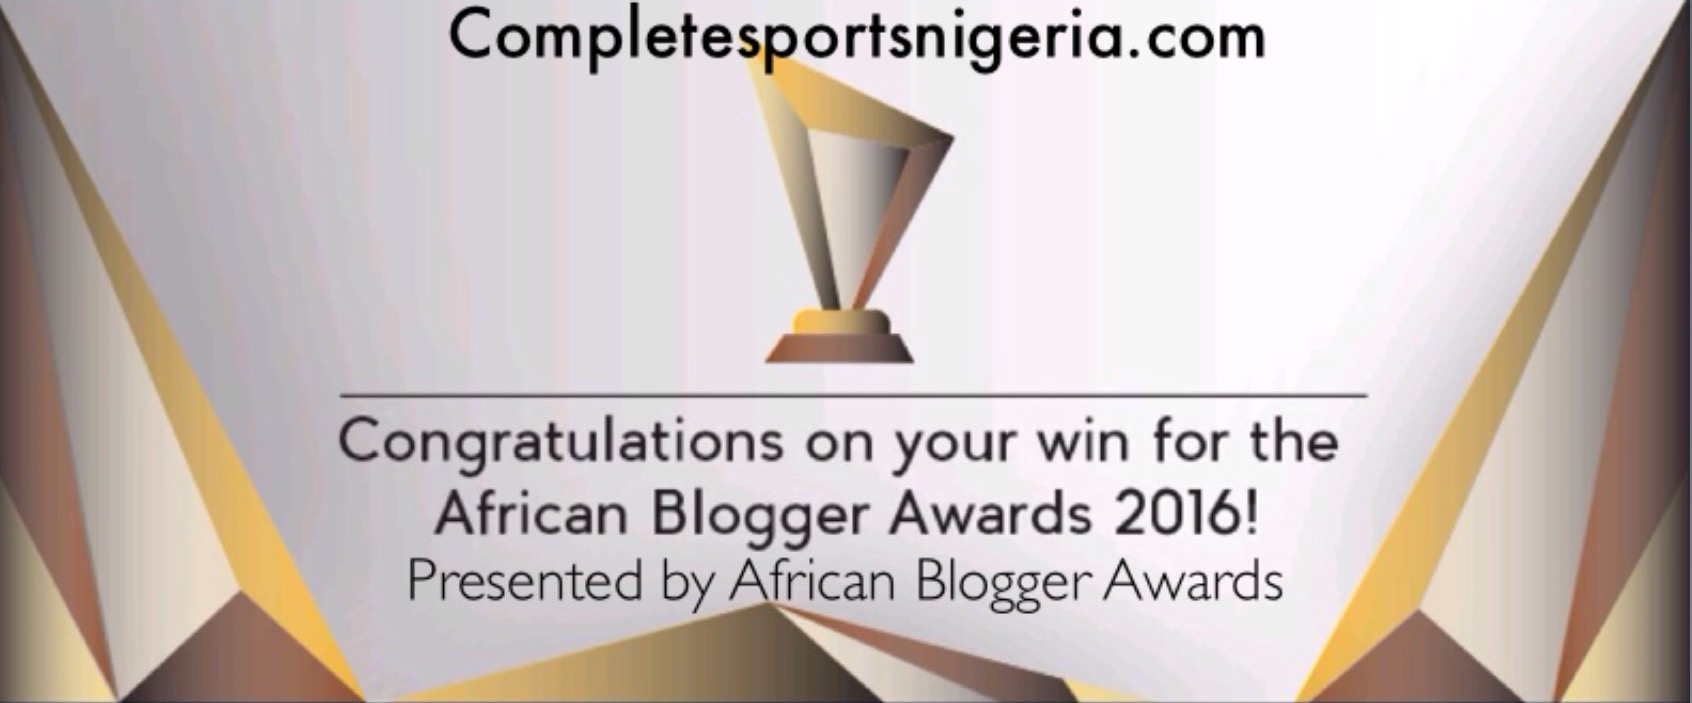 Completesportsnigeria.com Wins Best African Sports Website Award